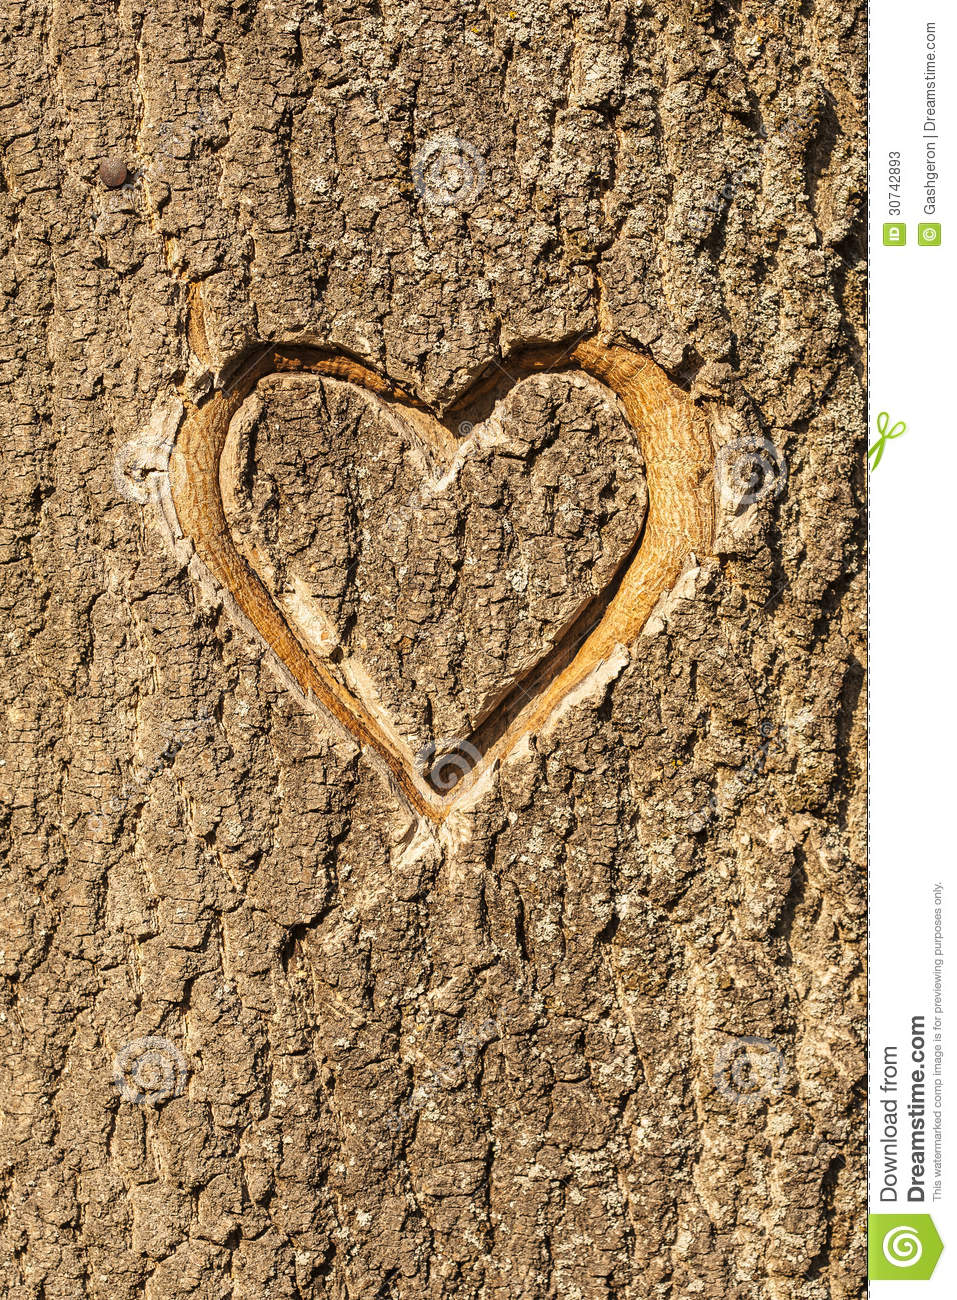 Heart Carved In The Bark Of A Tree. Stock Photos - Image ...